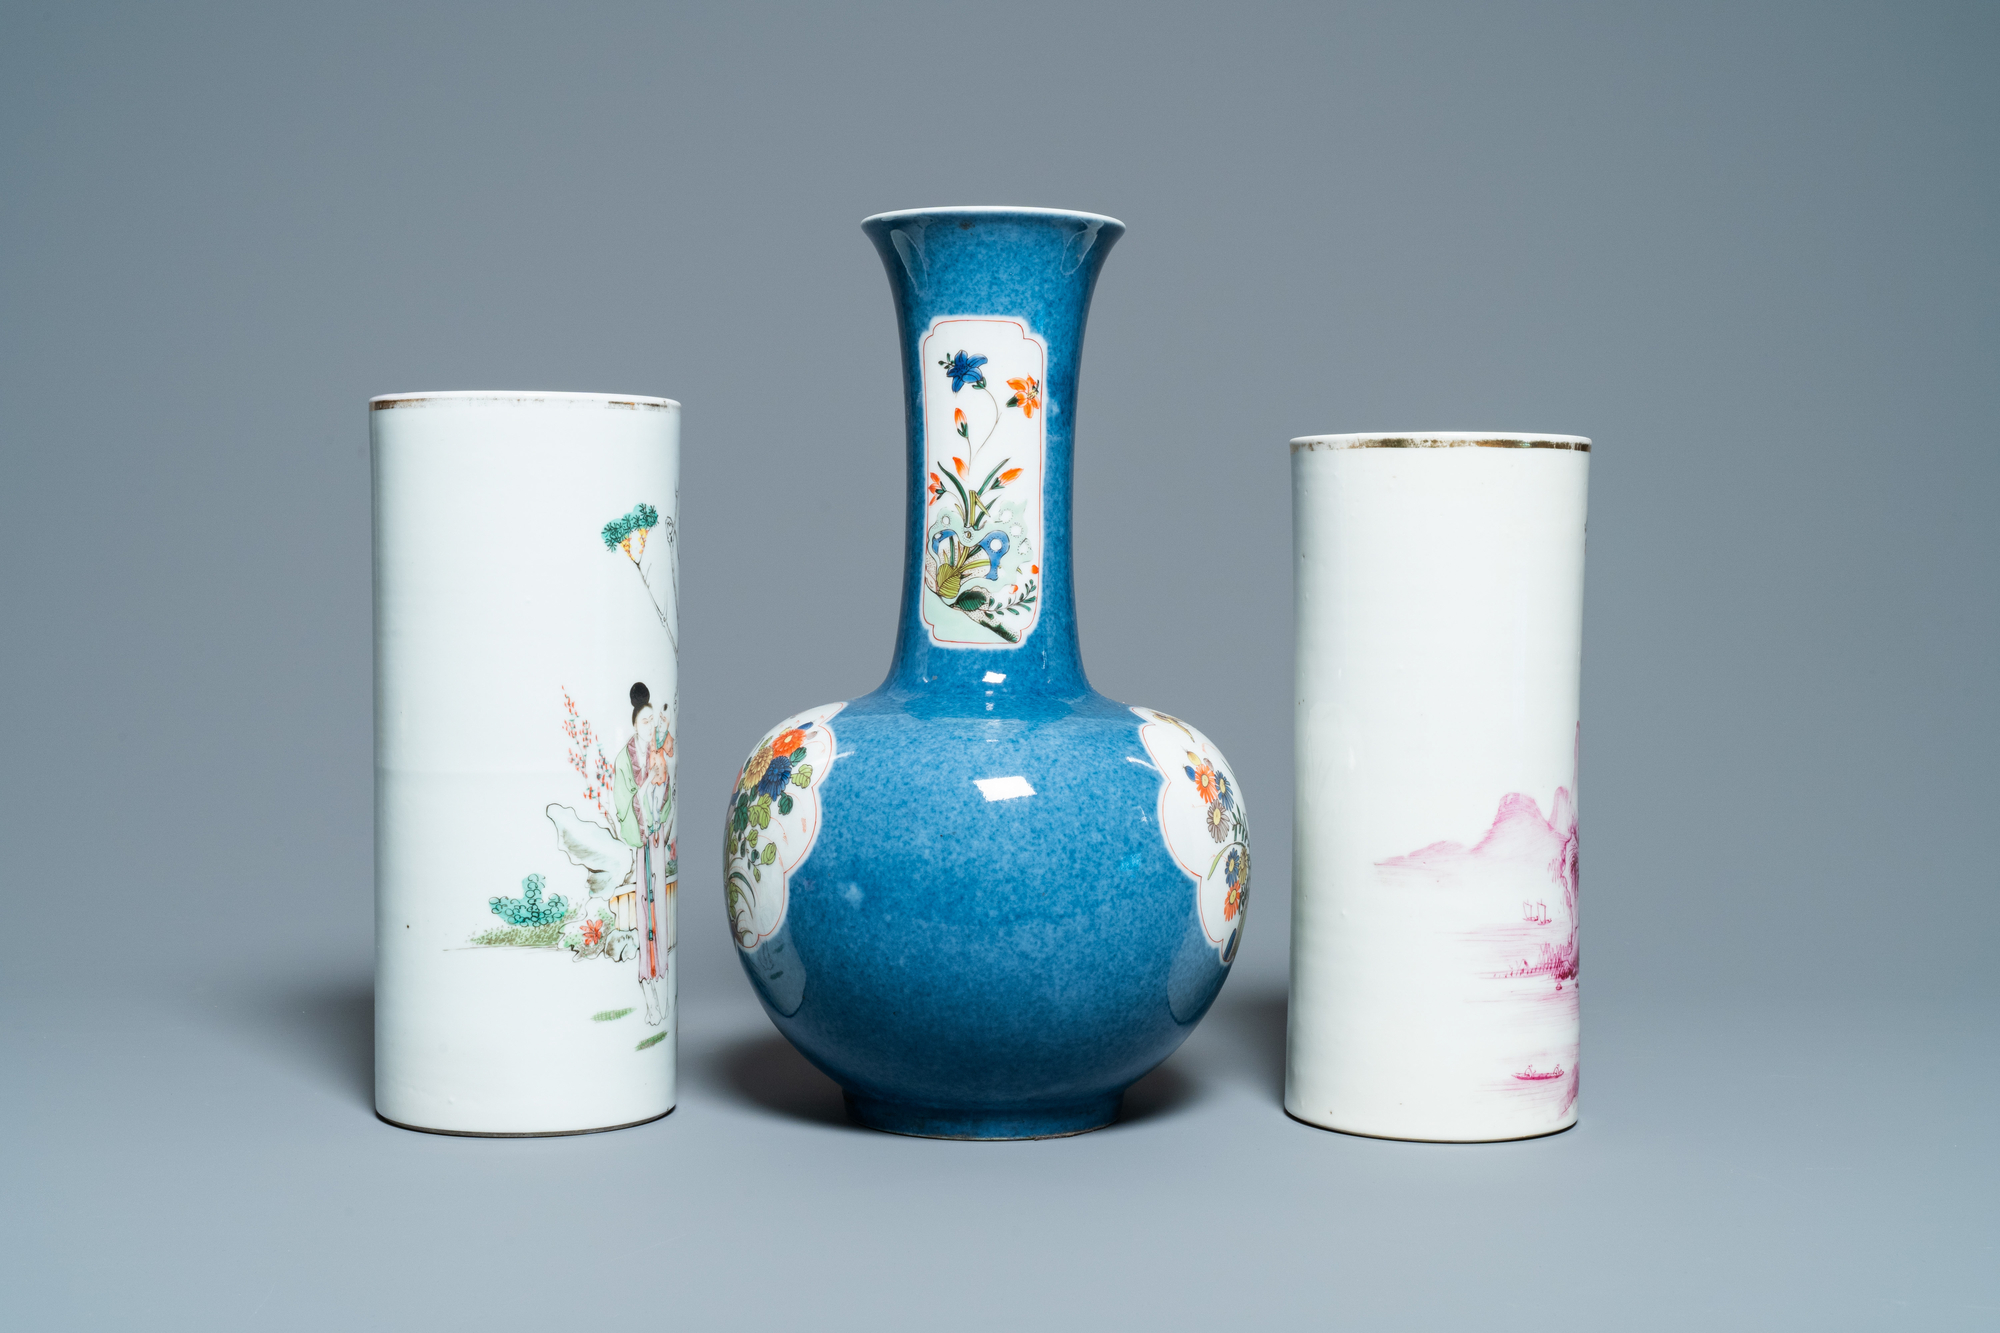 Six Chinese famille rose and verte vases, 19/20th C. - Image 11 of 13